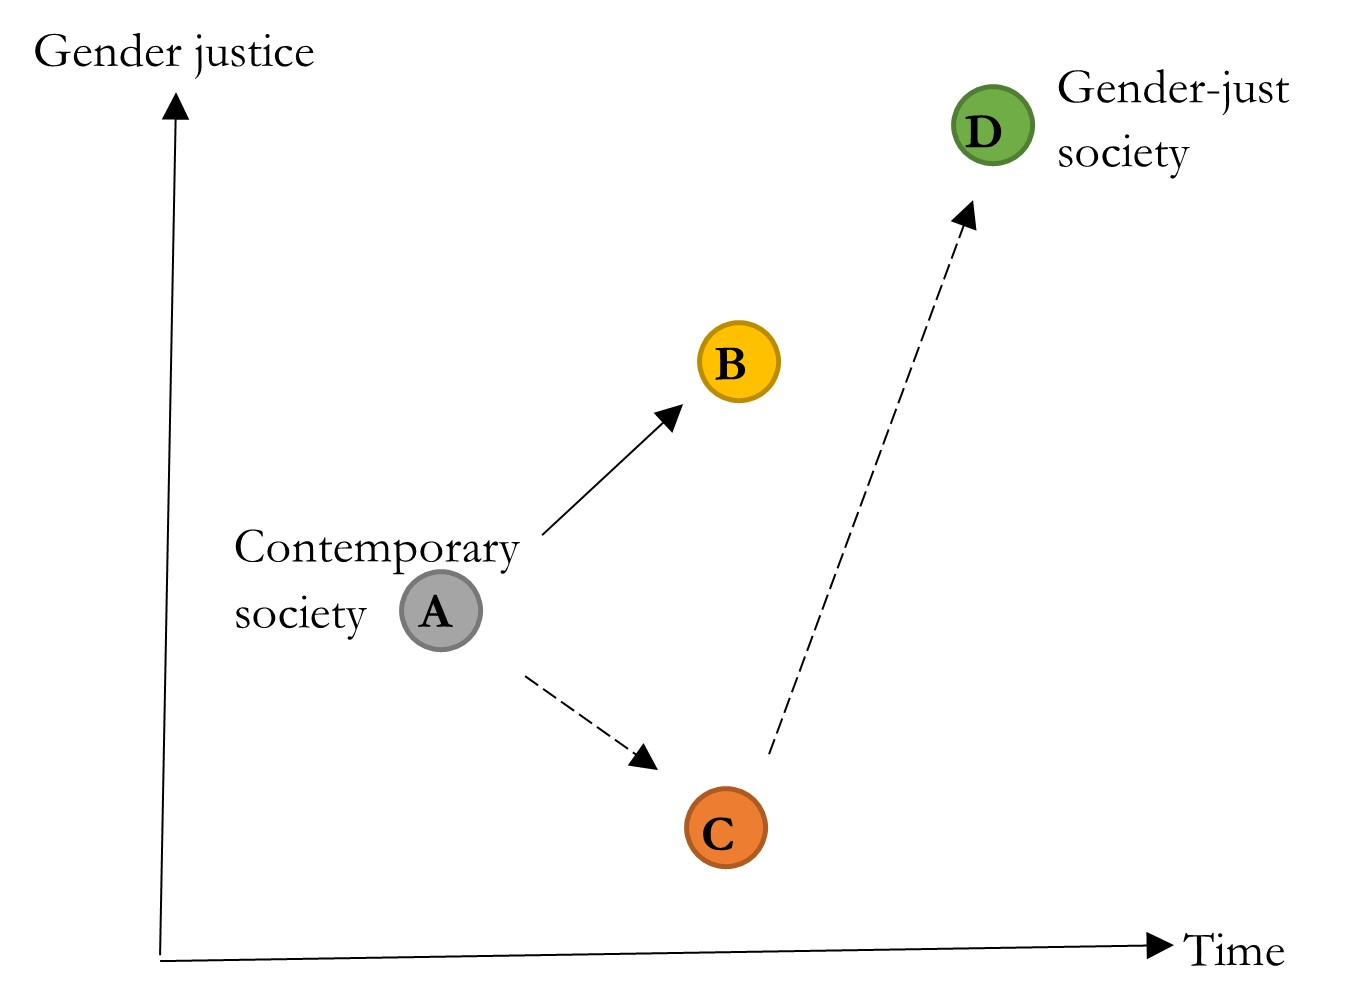 Oxford Uehiro Prize in Practical Ethics: Should Feminists Endorse a Universal Basic Income?